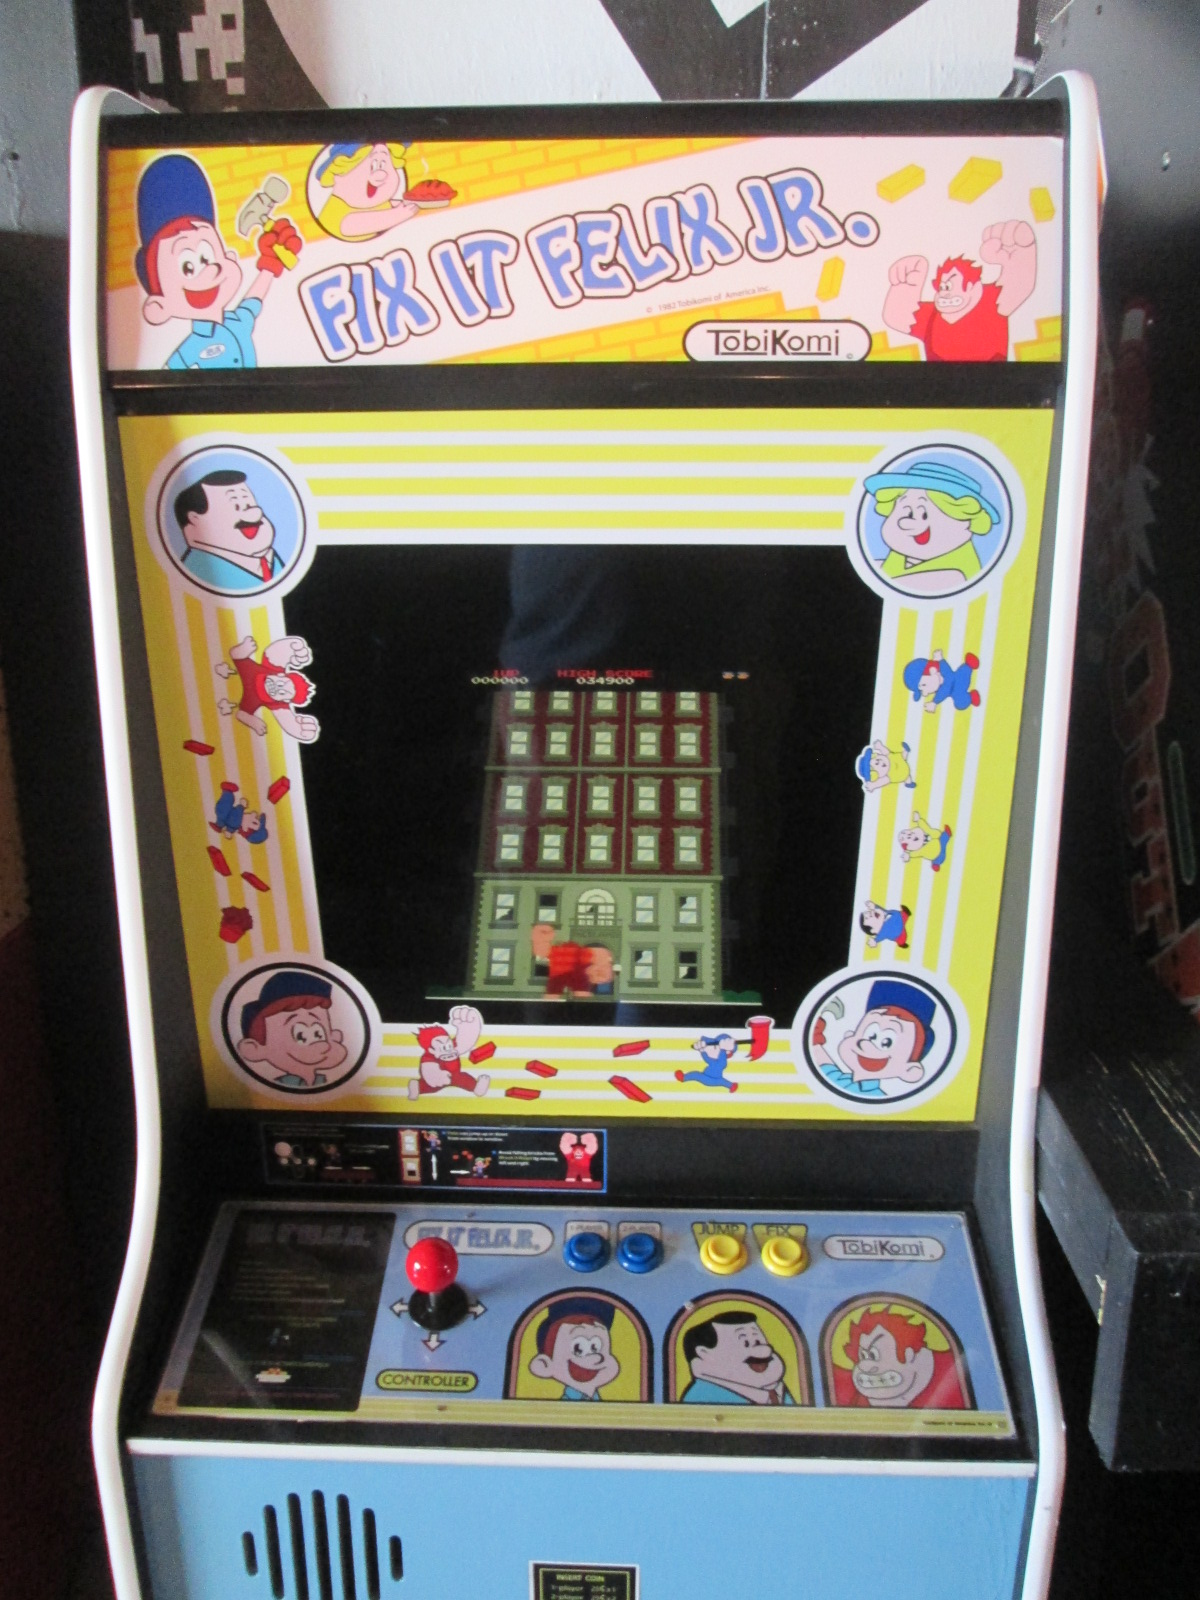 ed1475: Fix-It Felix Jr. (Arcade) 600 points on 2016-09-11 15:50:33